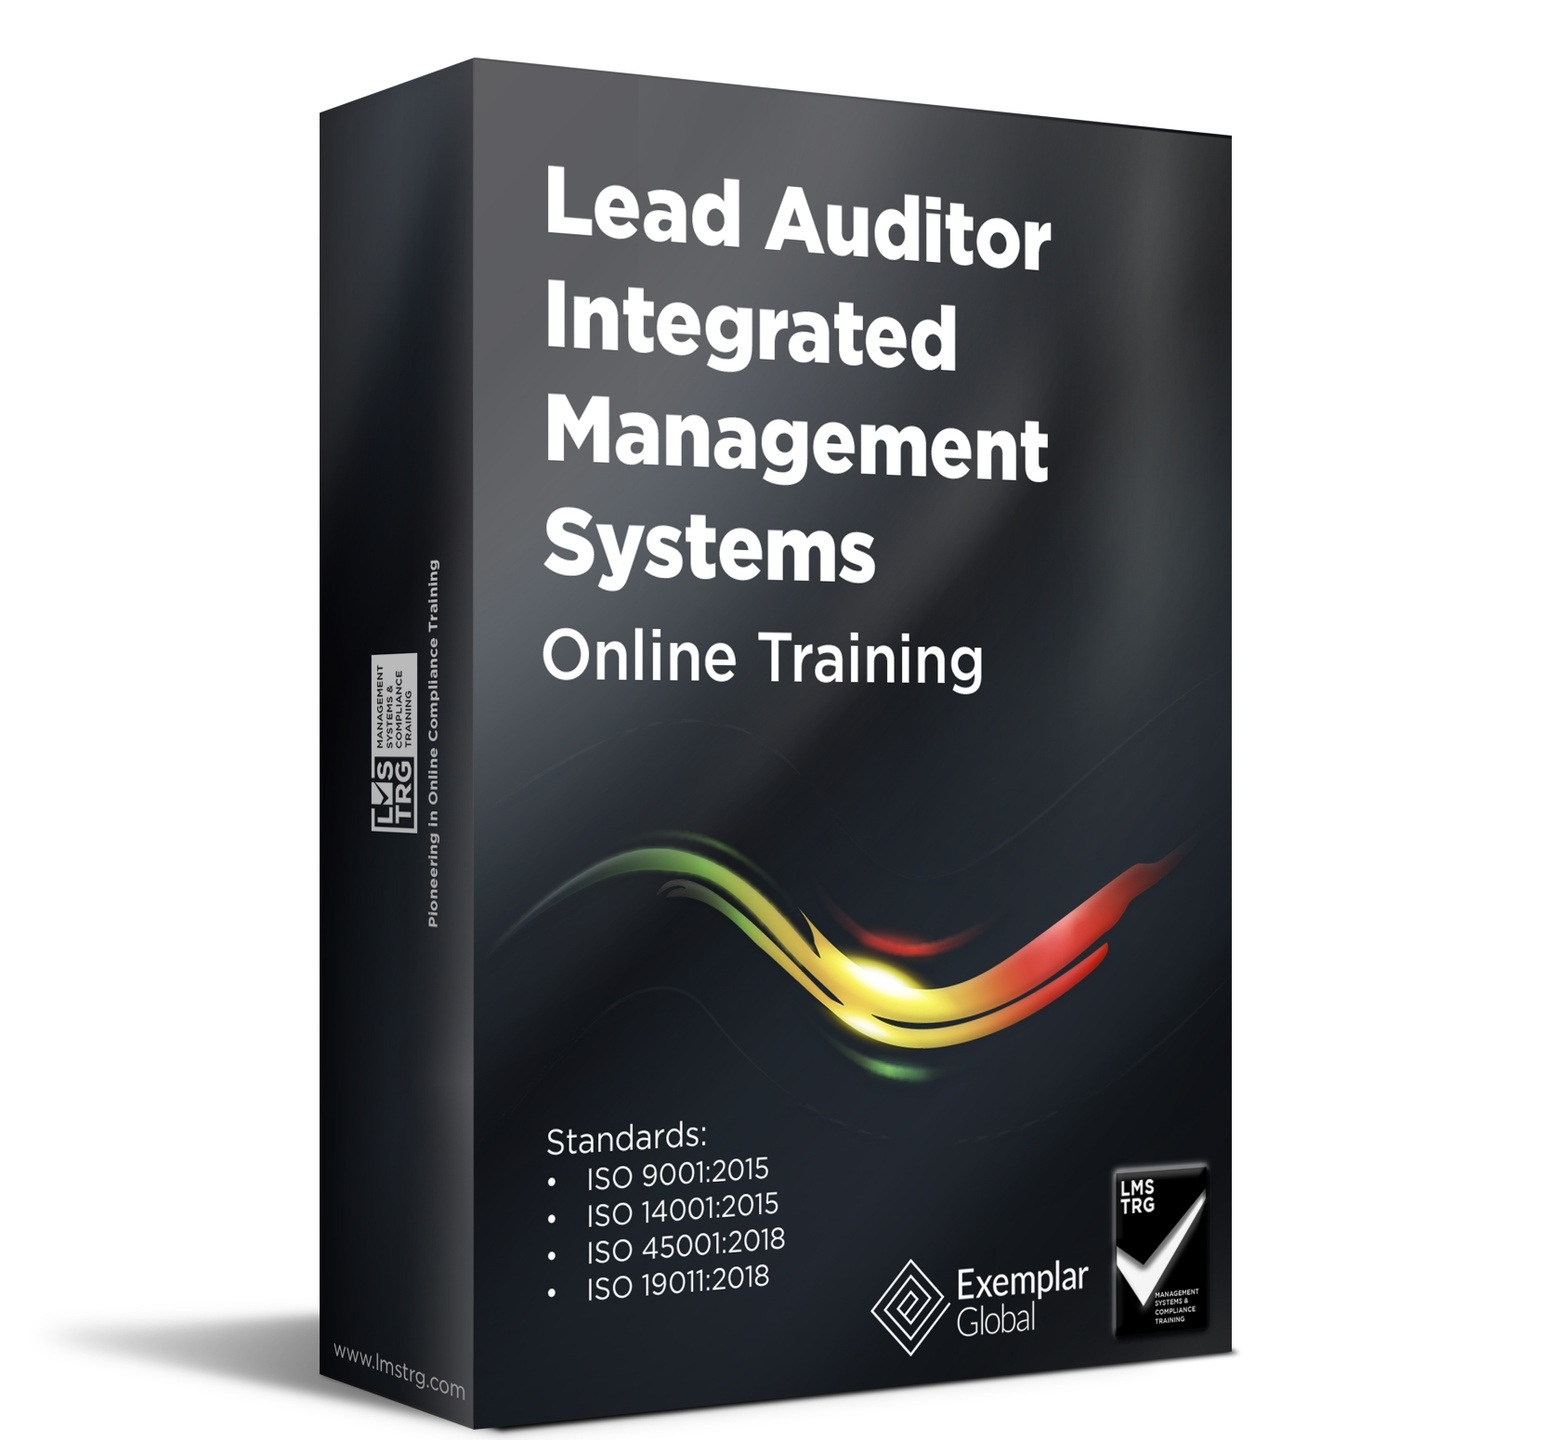 integrated management systems lead auditor iso 9001 iso 14001 iso 45001 IMS